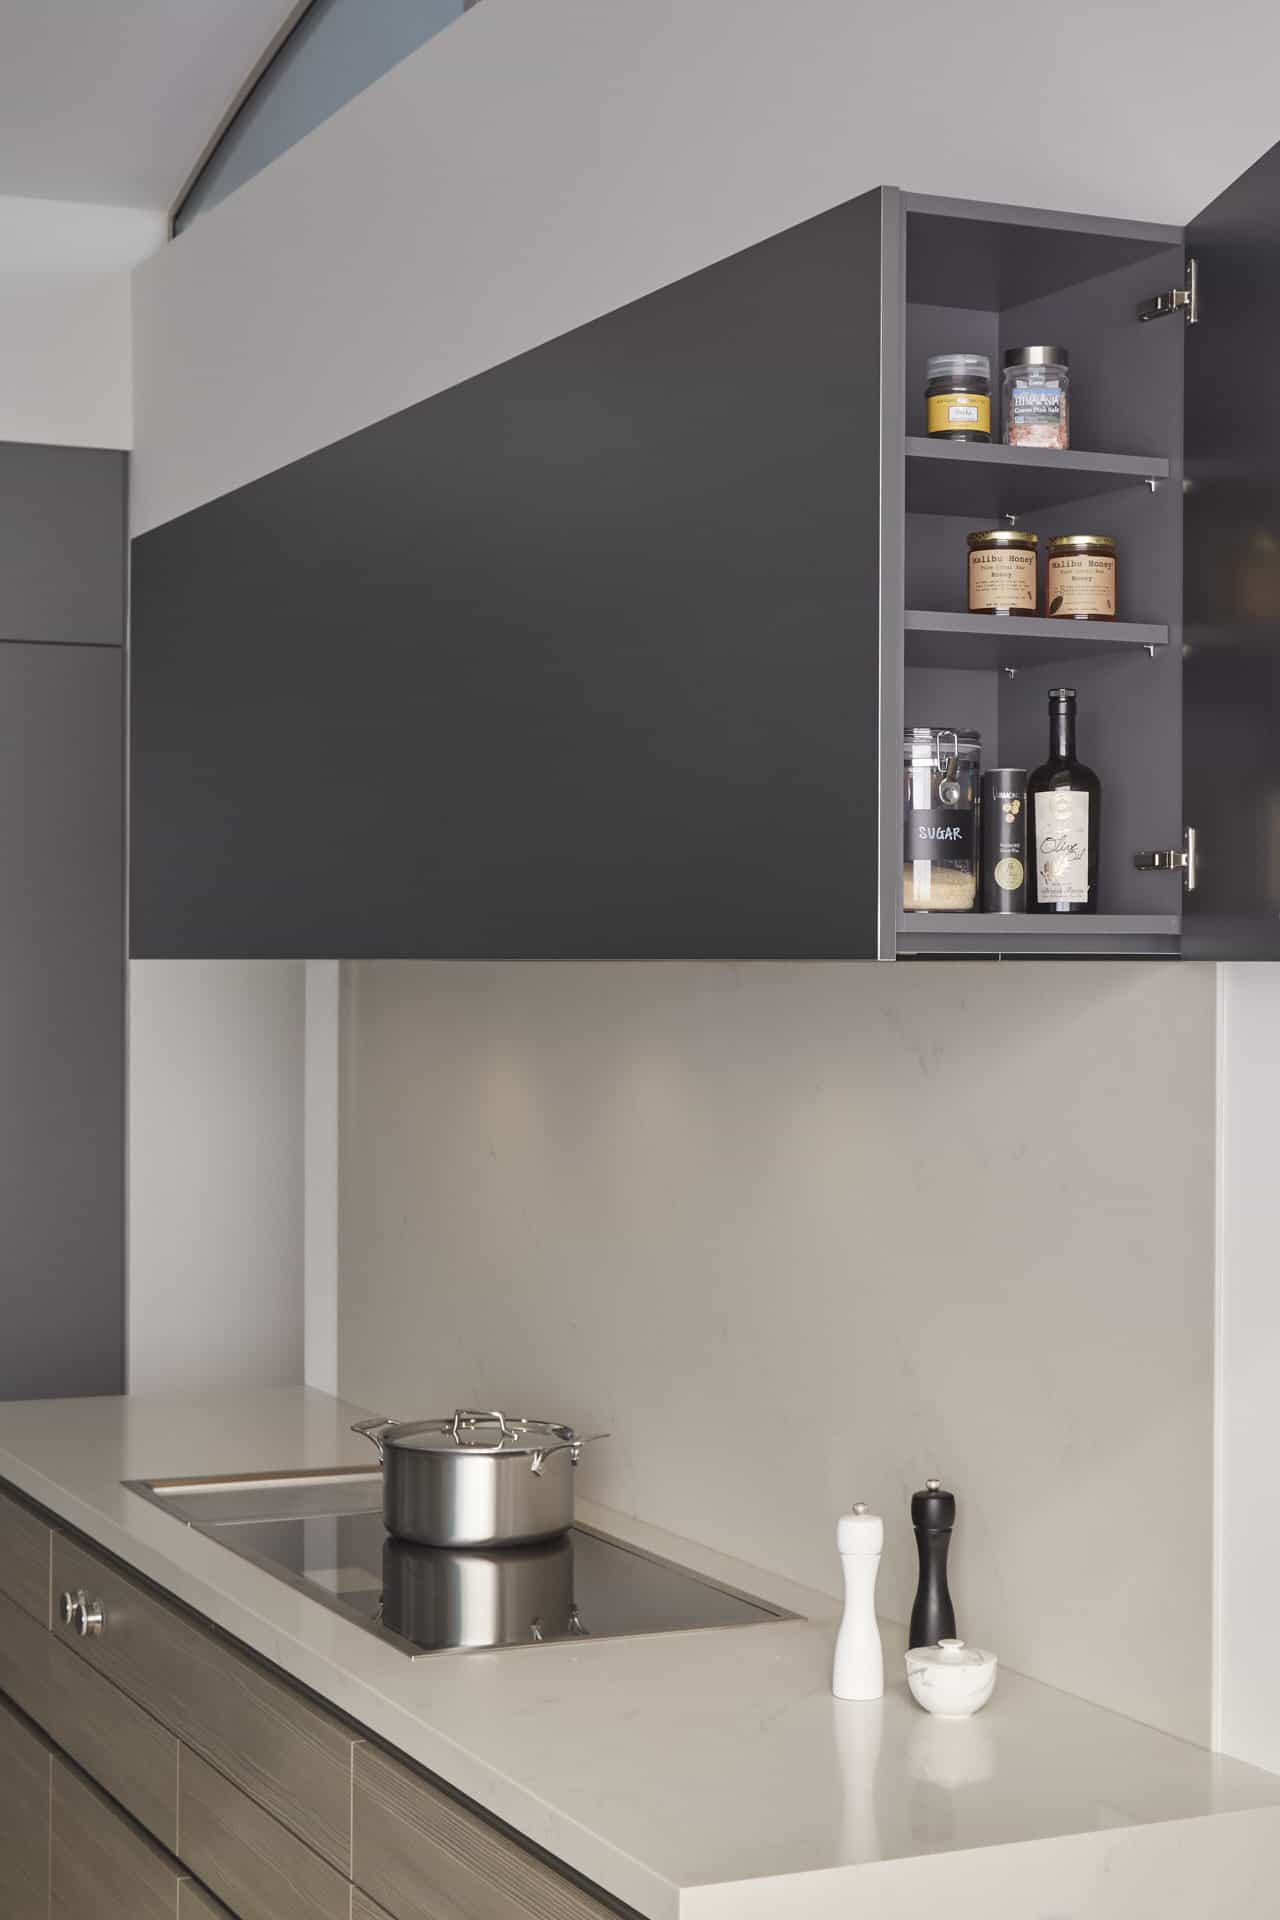 A surprise endcap cabinet in the main kitchen flanking the stove hood with Miele insert